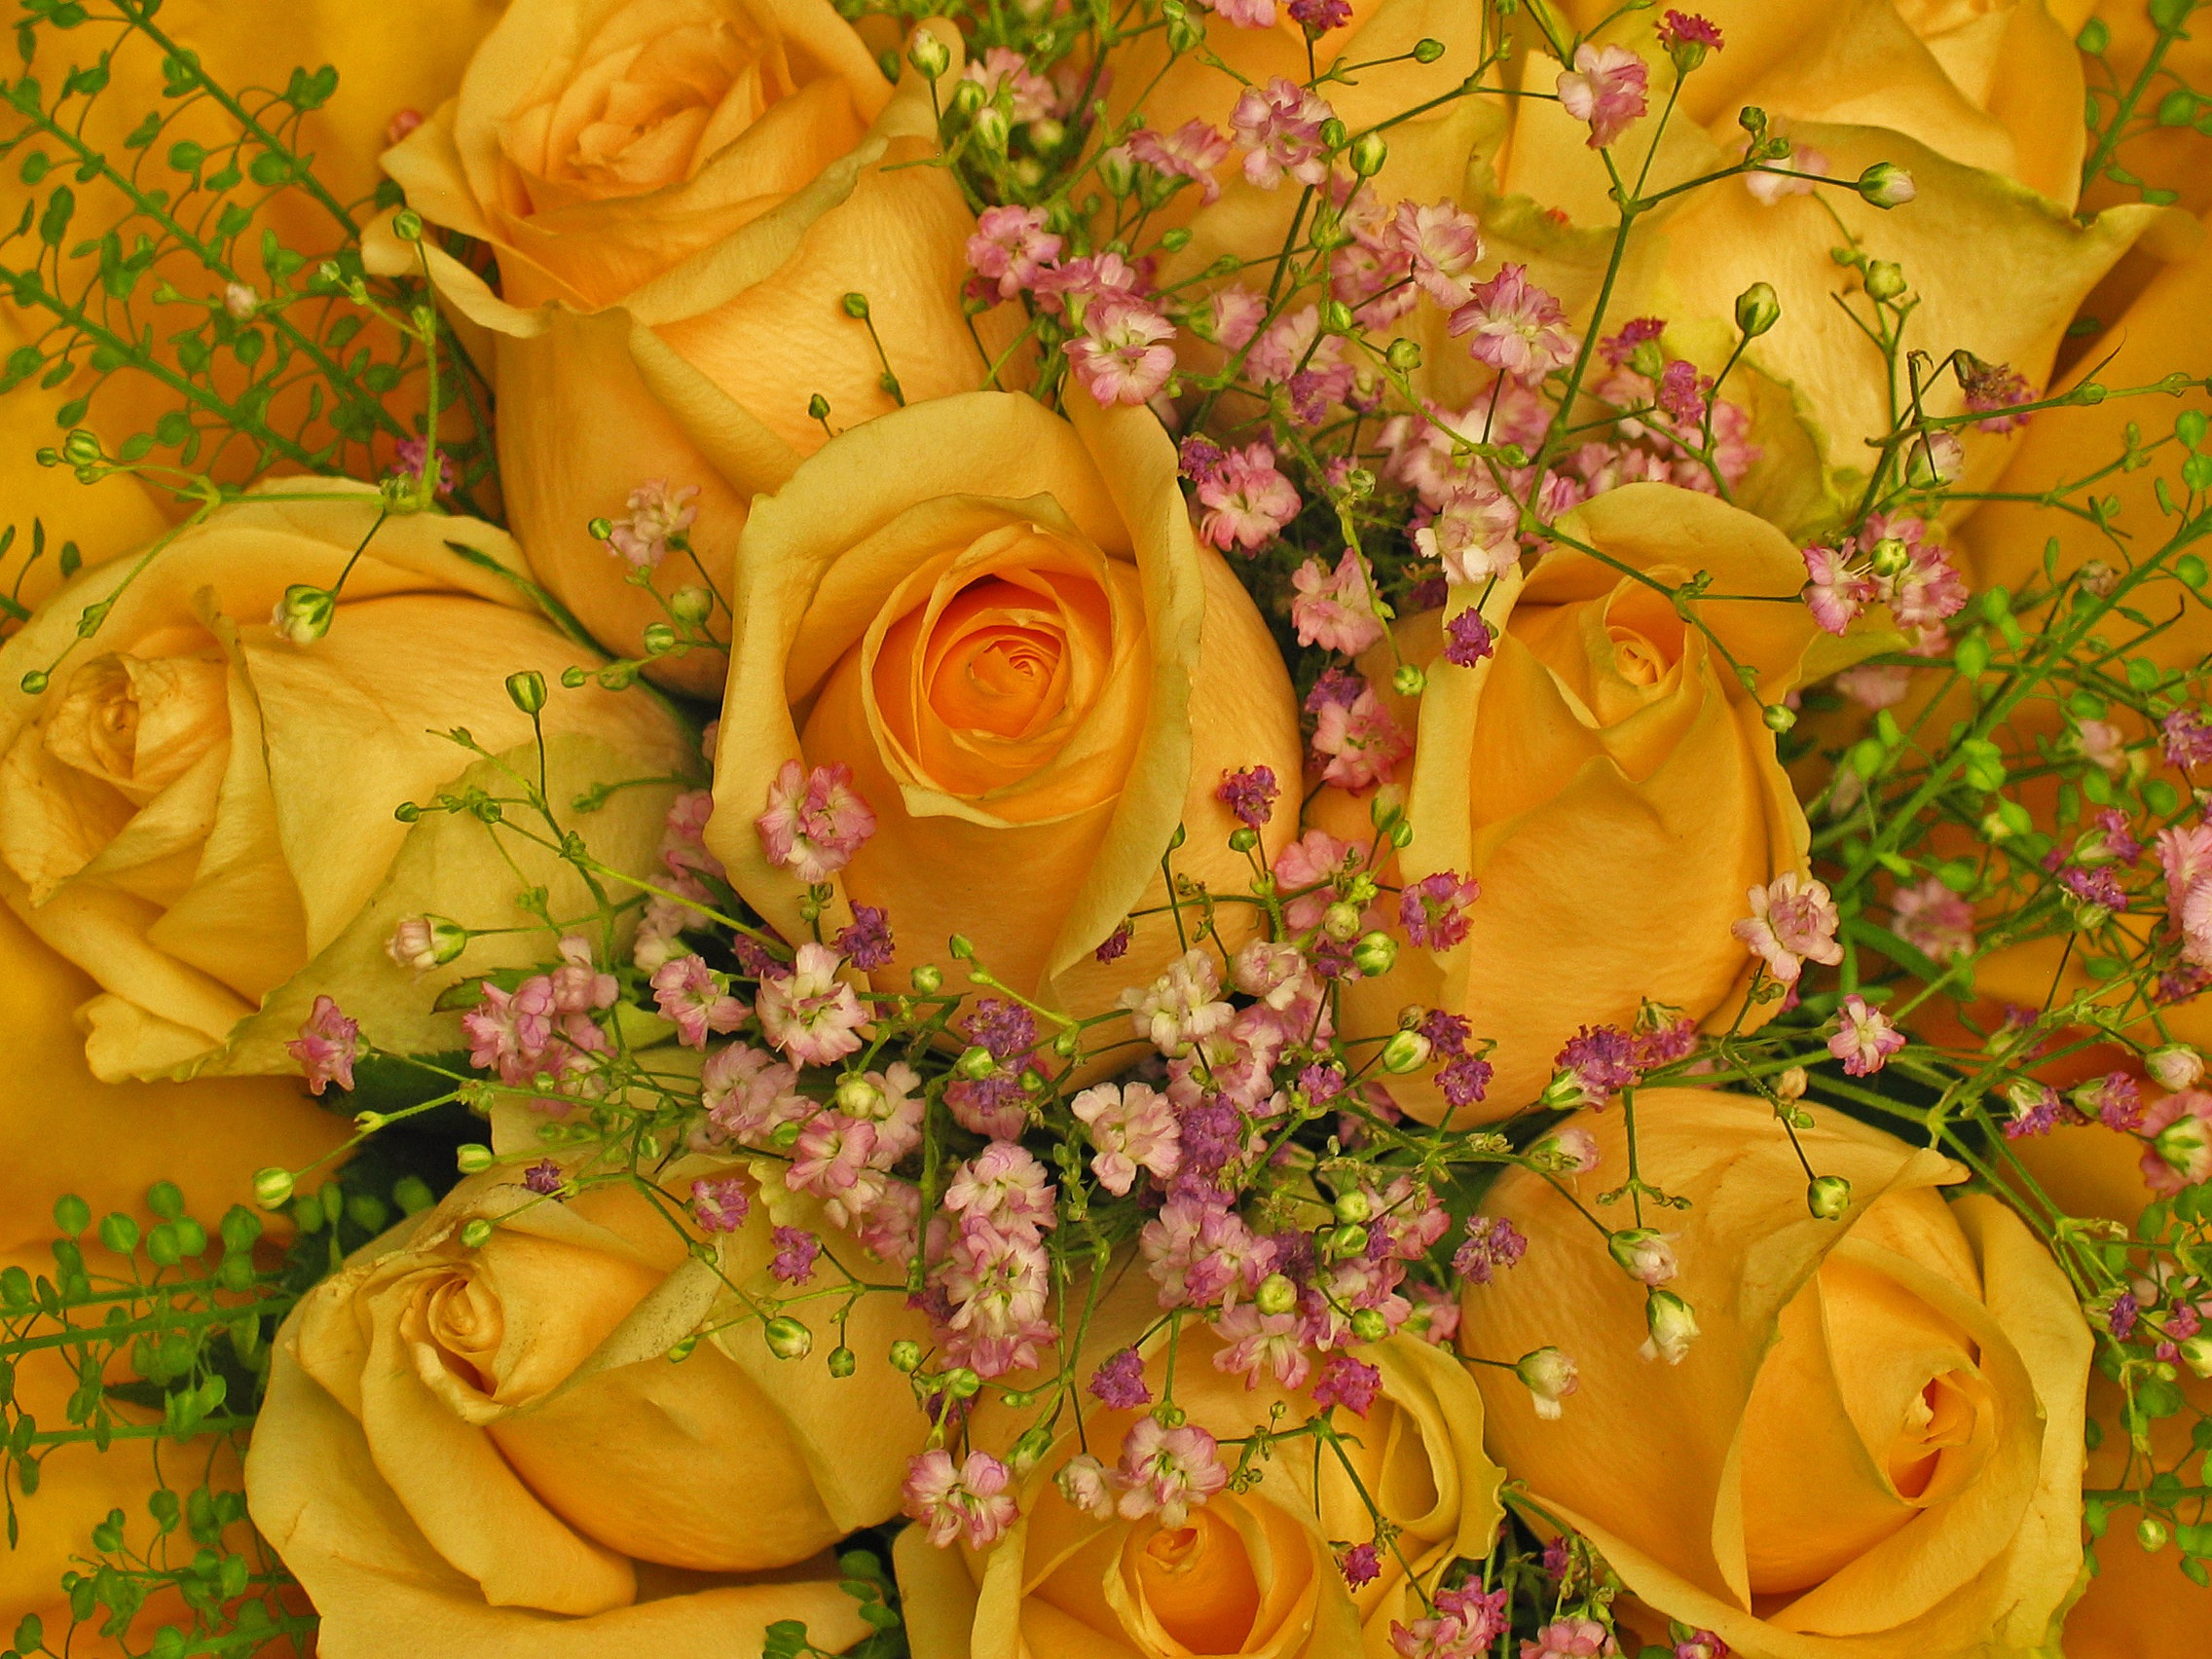 yellow rose vase of free images petal bloom love vase autumn flora florist for free images petal bloom love vase autumn flora florist gypsophila affection background petals beautiful bud floristry congratulate